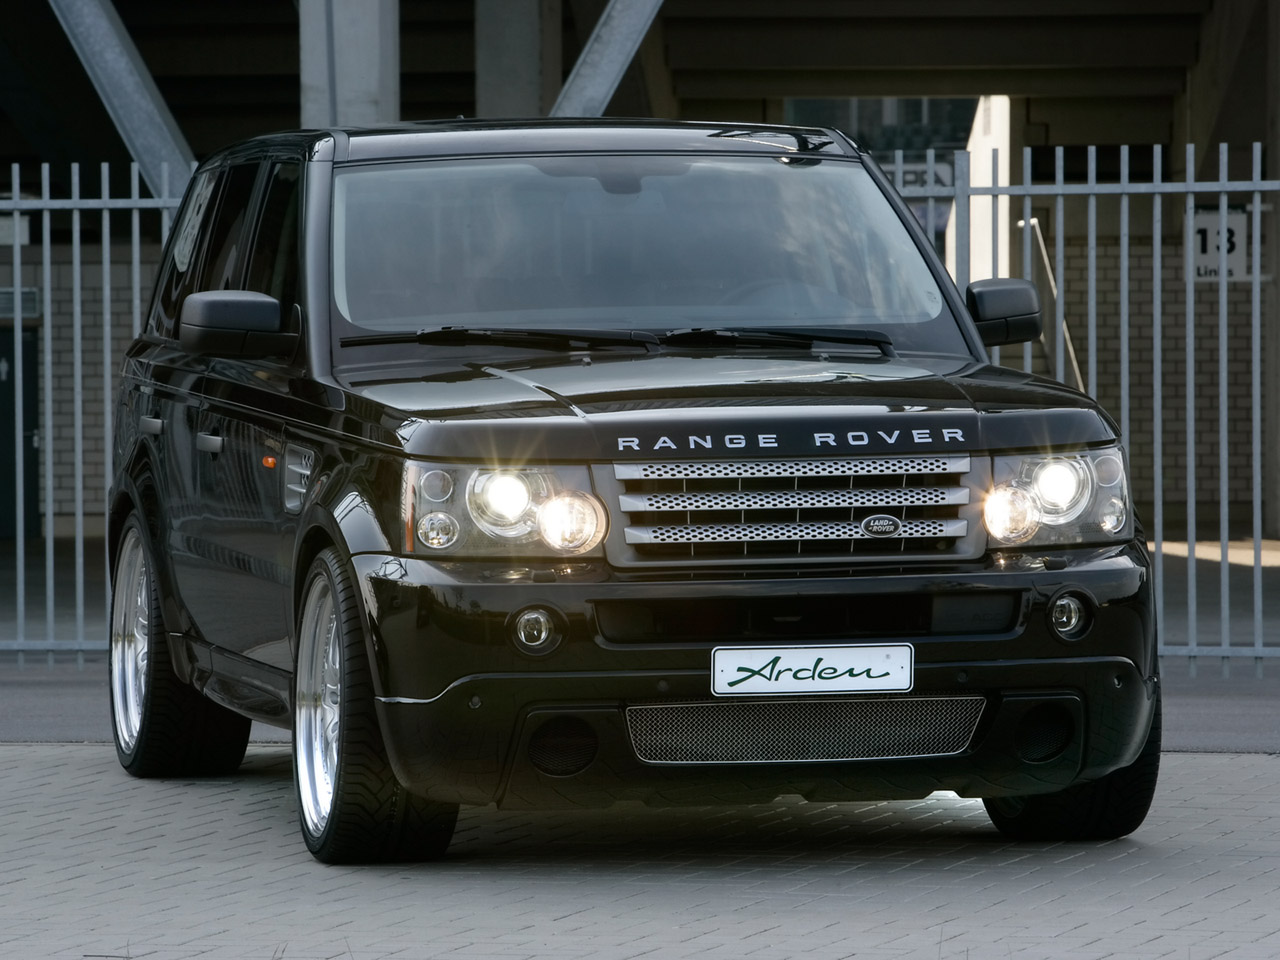 range rover sport car specifications brand model Wallpapers Download